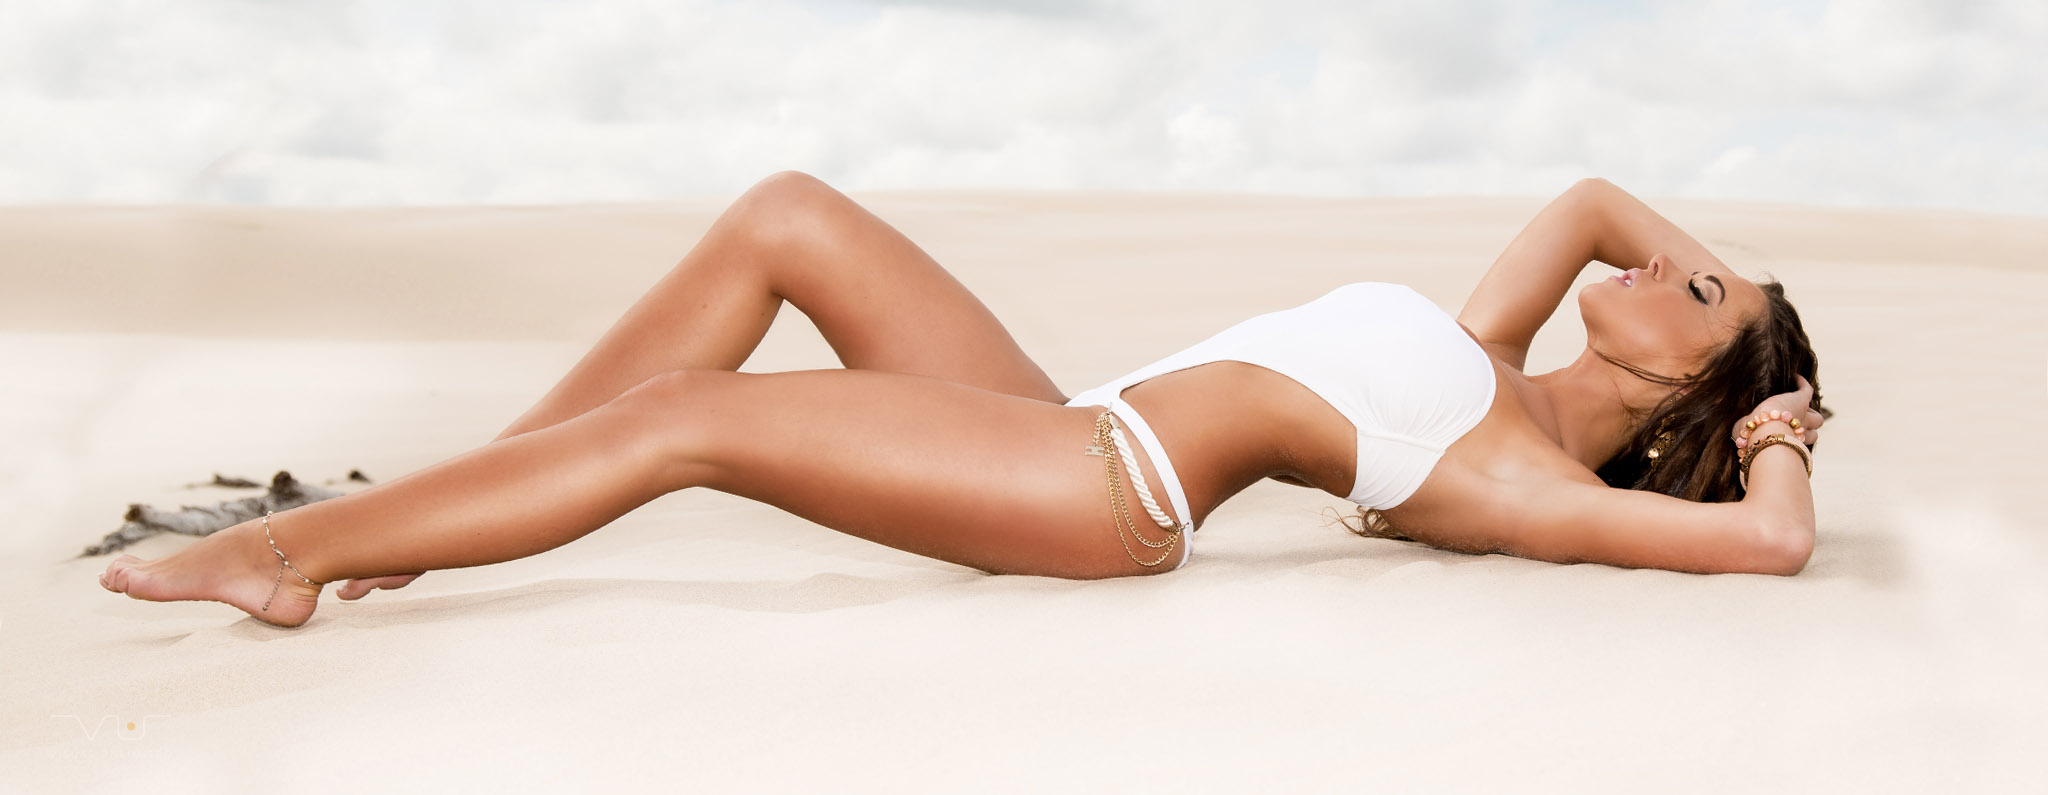 Bilder VU Header Photography 03 Bademode - Beachwear